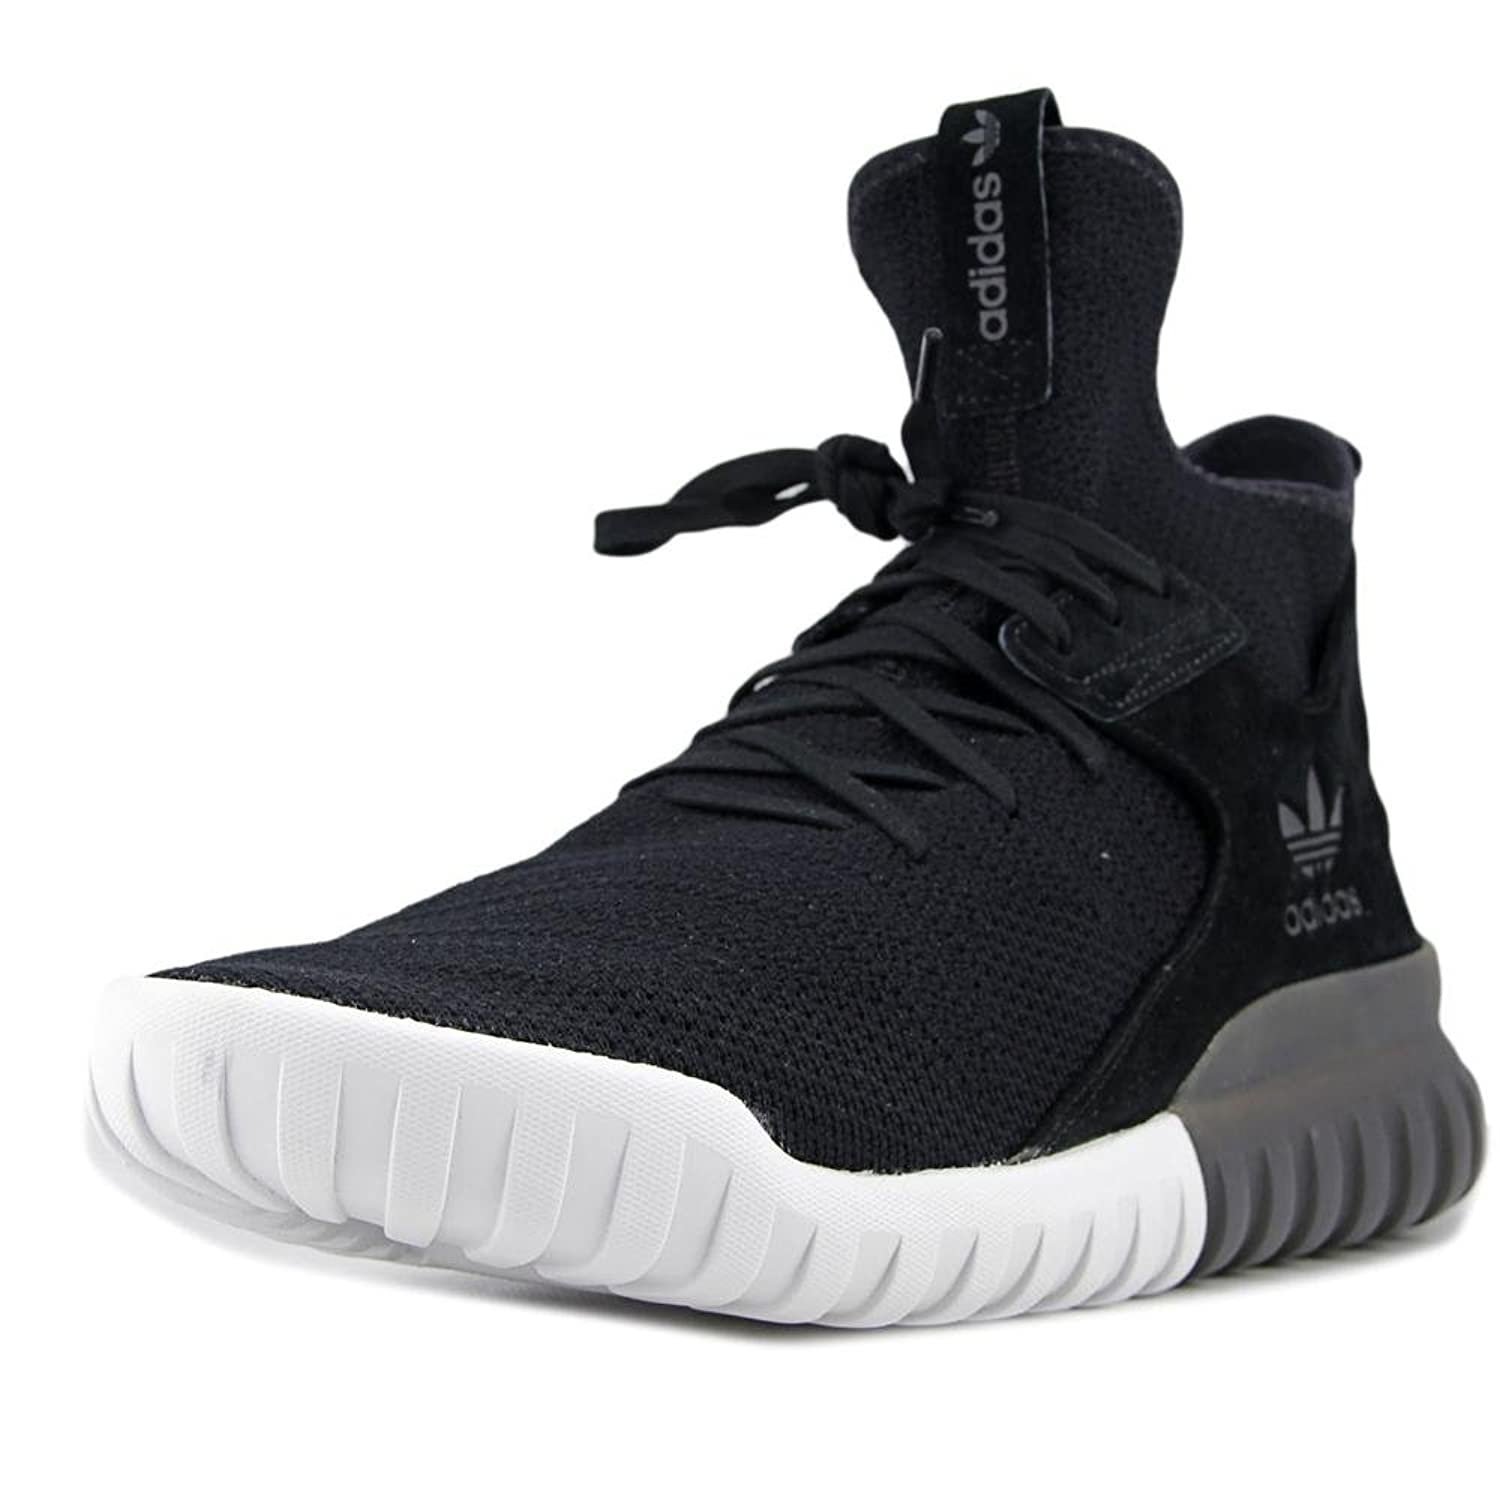 adidas Tubular X Primeknit Shoes Grey adidas UK Cheap Tubular X